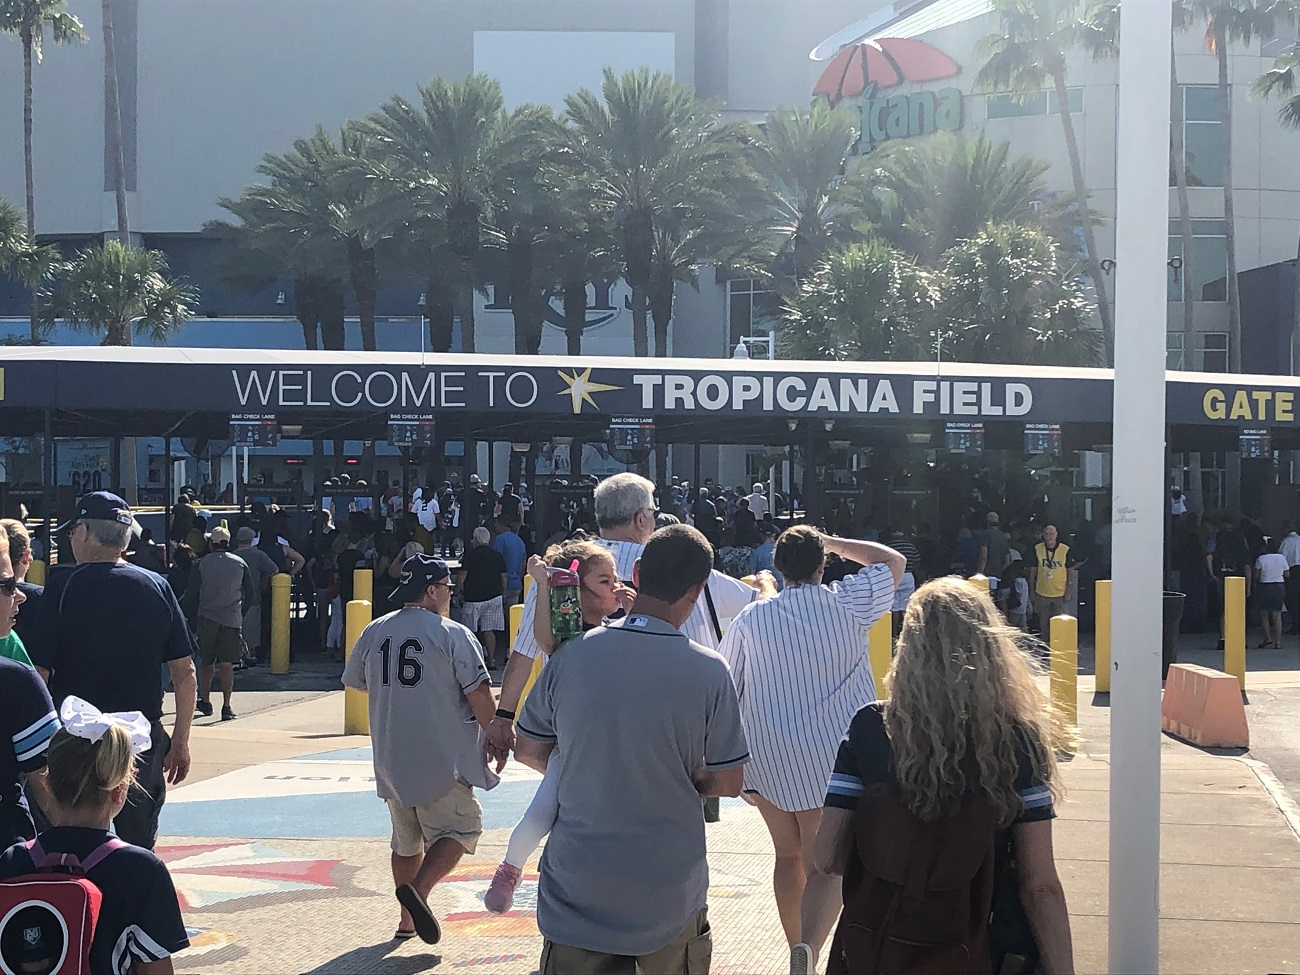 Walking to Tropicana Field